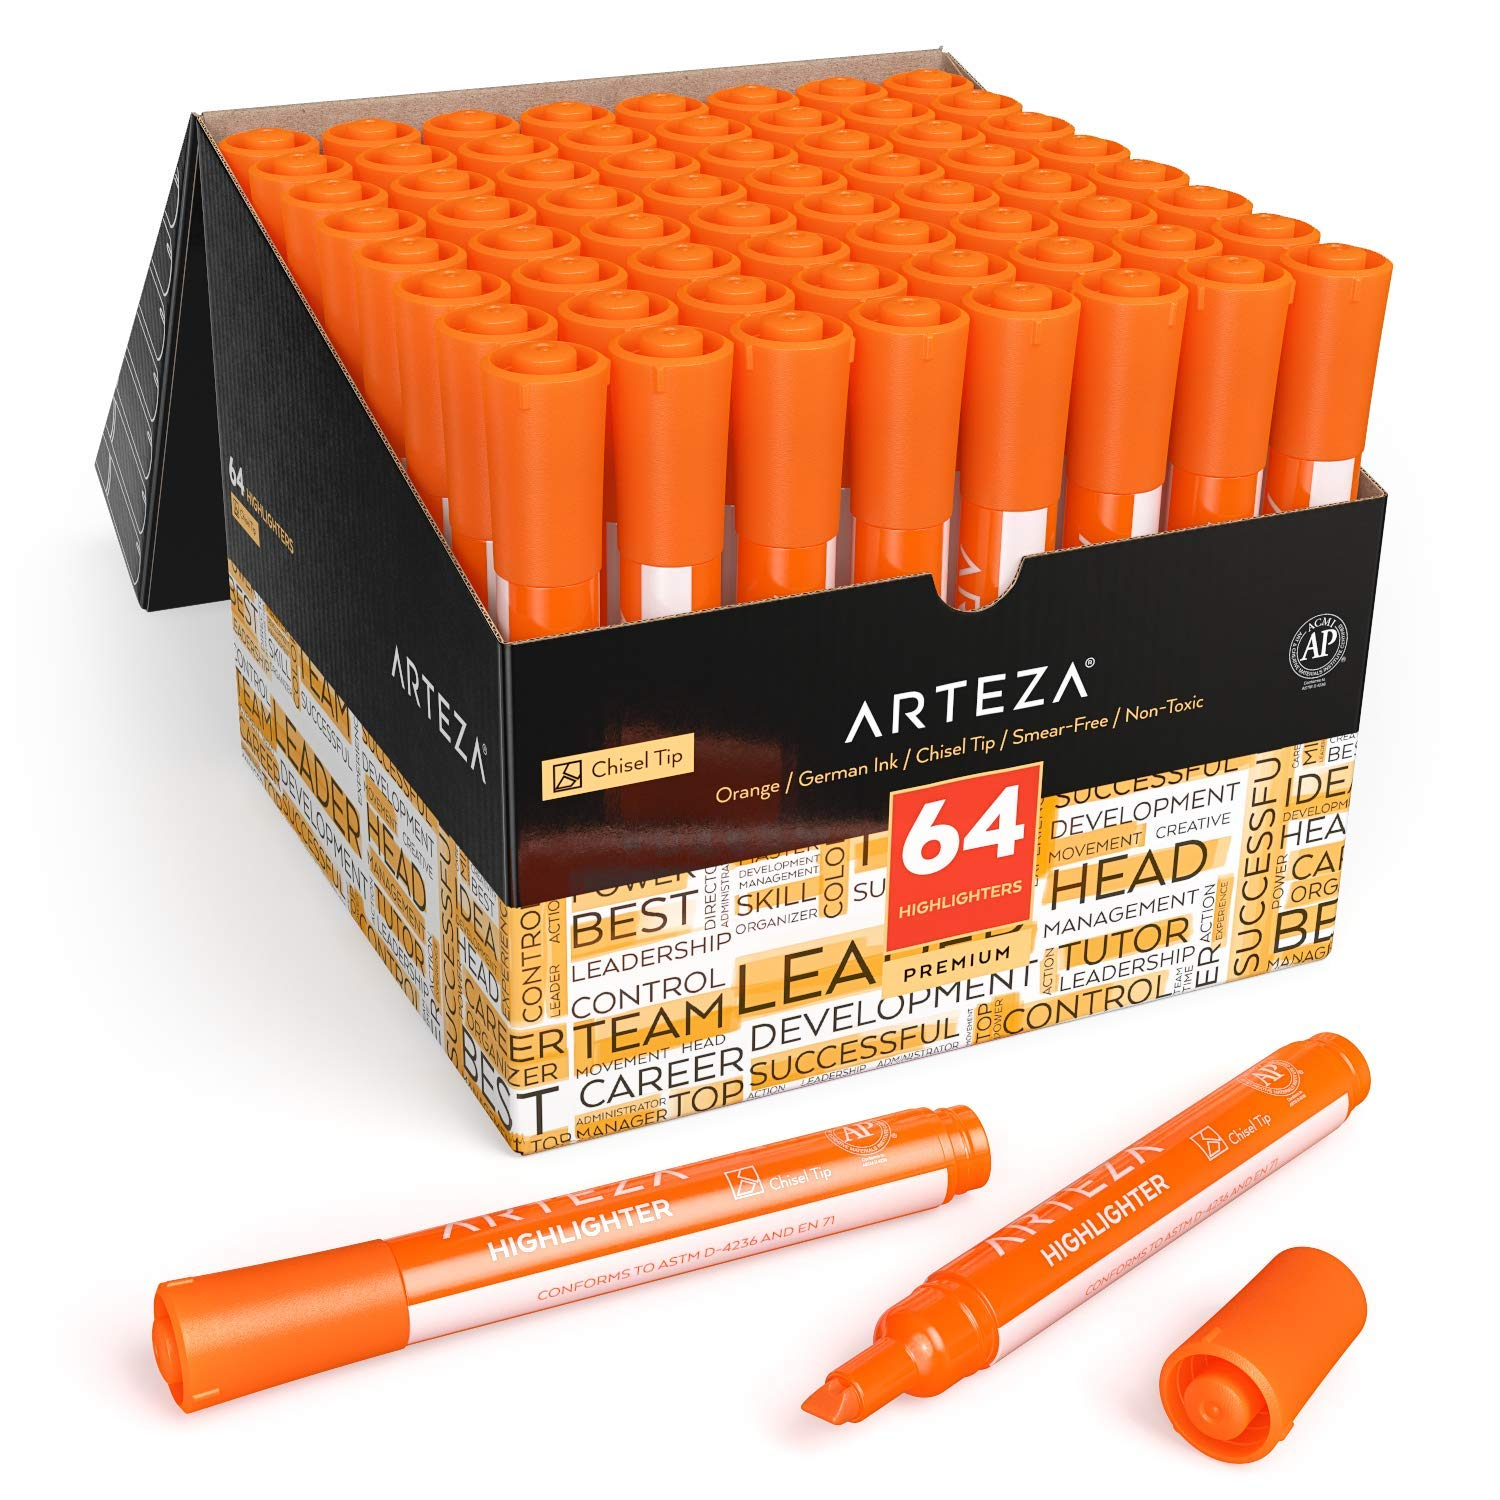 Arteza Highlighters Set of 64, Orange Color, Wide Chisel Tips, Bulk Pack of Markers, for Office, School, Kids & Adults